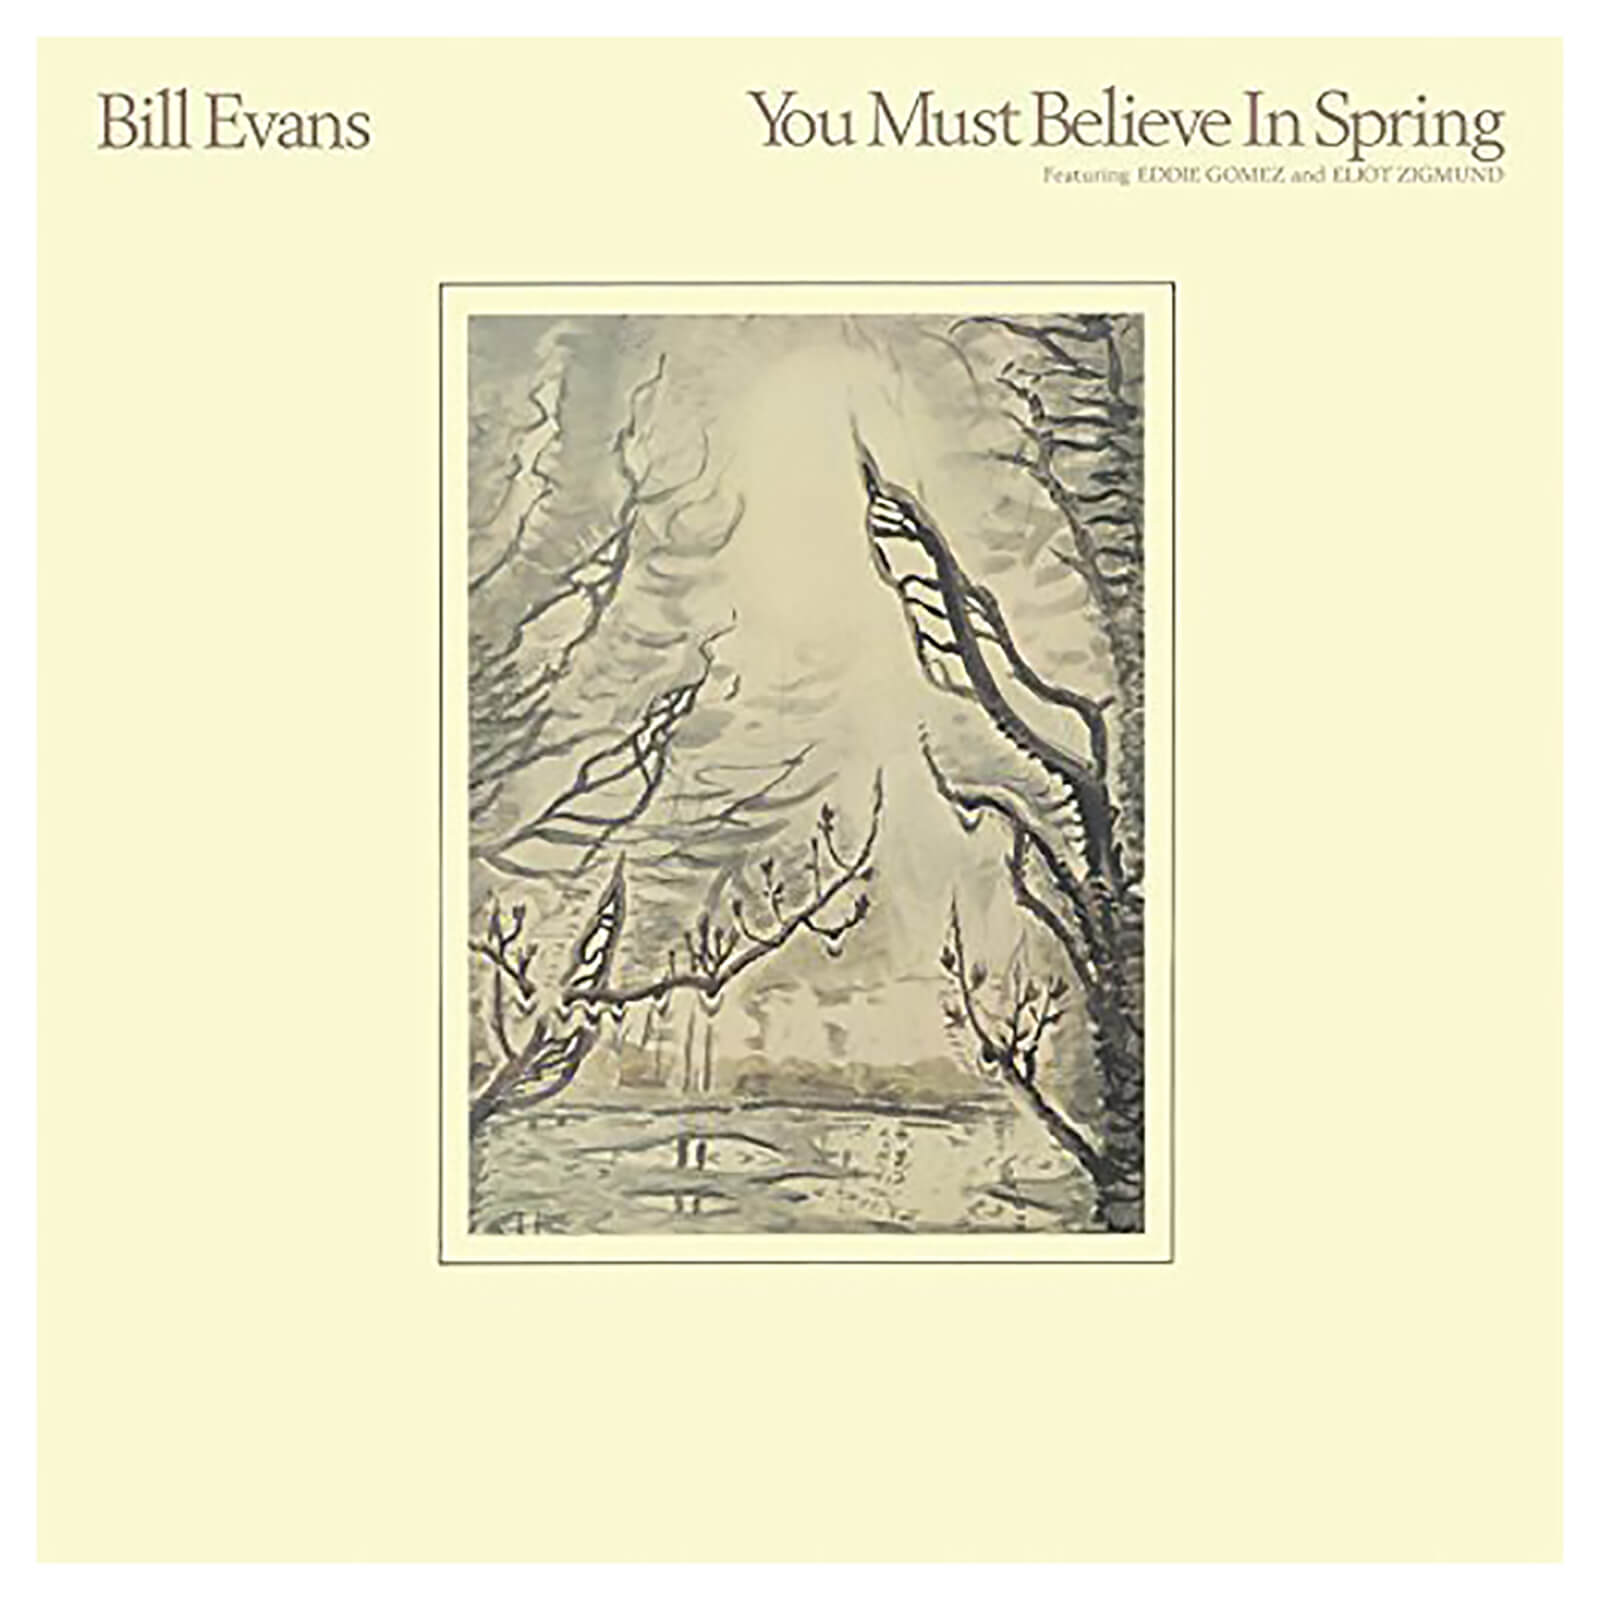 Bill Evans - You Must Believe In Spring - Vinyl